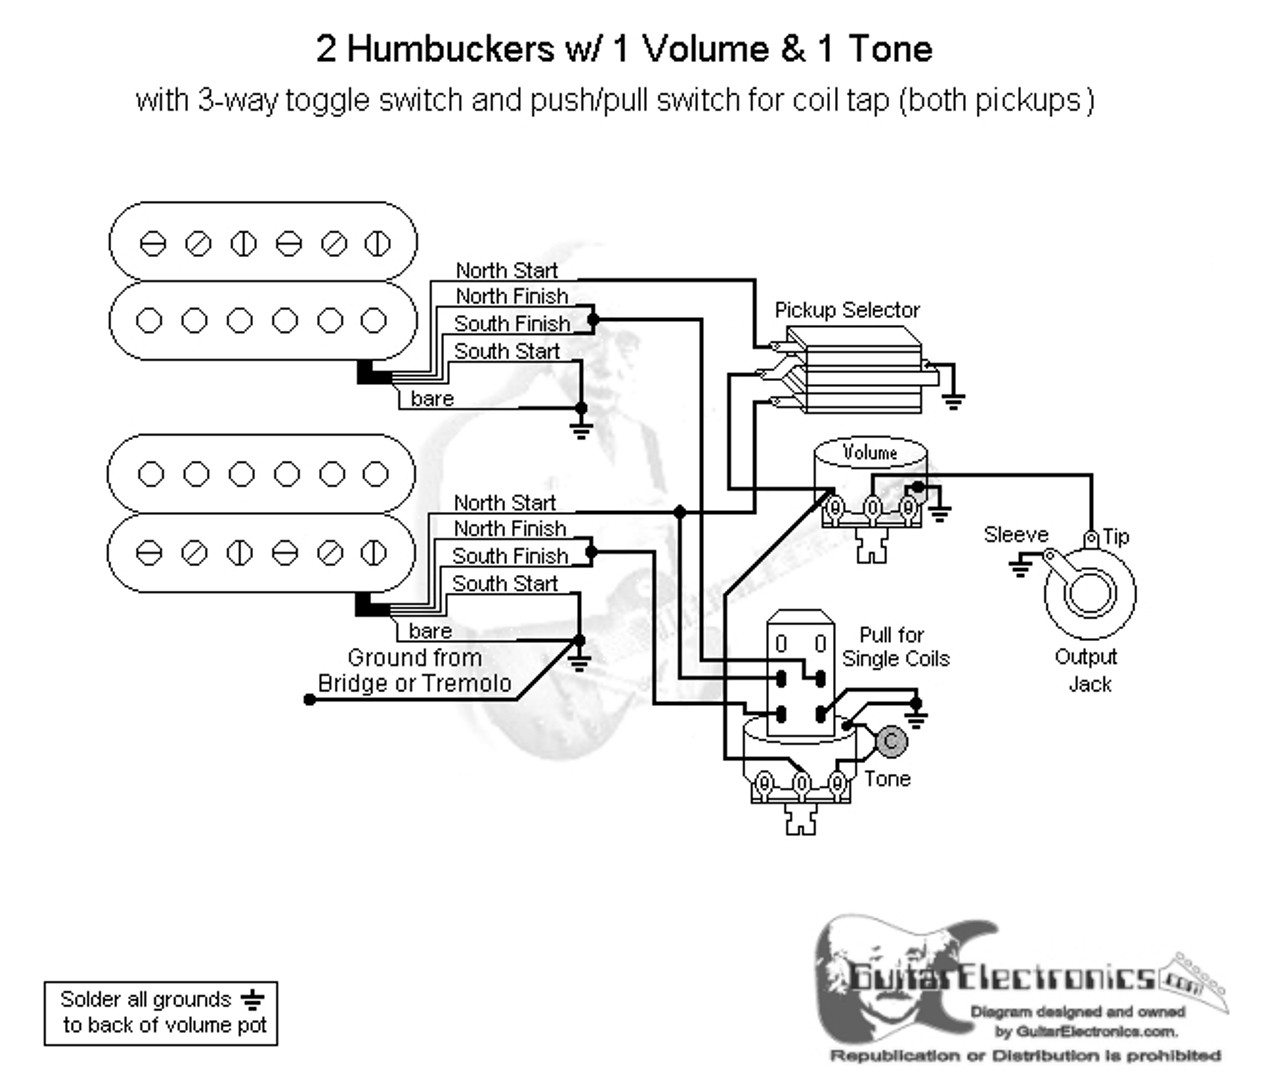 medium resolution of 2 humbuckers 3 way toggle switch 1 volume 1 tone coil tap model wiring diagram wd2hh3t11 01 45715